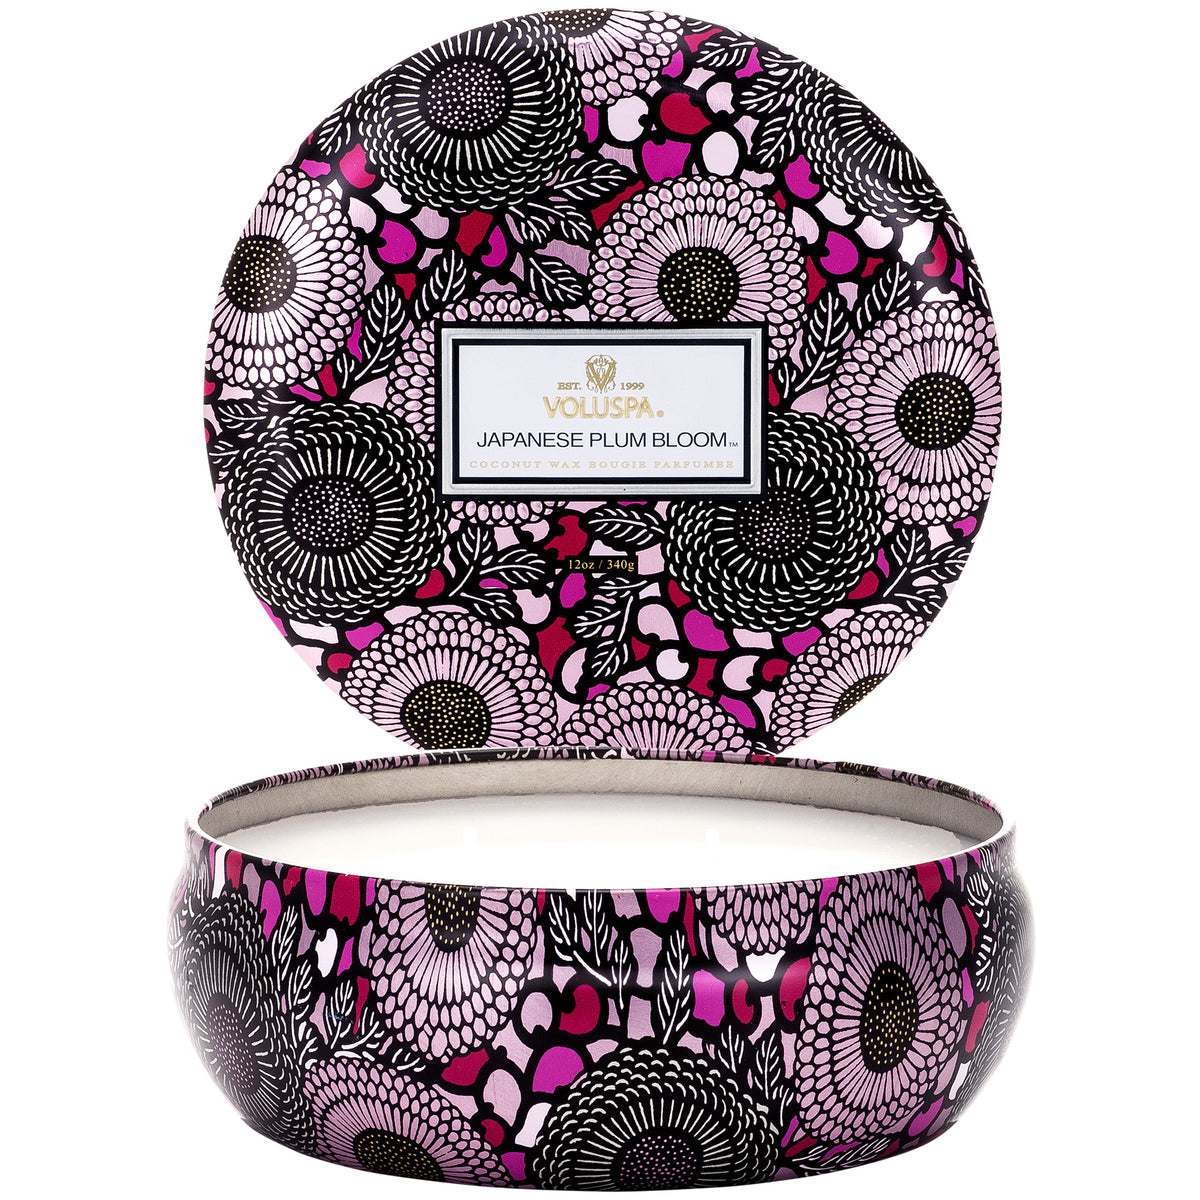 Japanese Plum Bloom - 3 Wick Tin Candle - 2